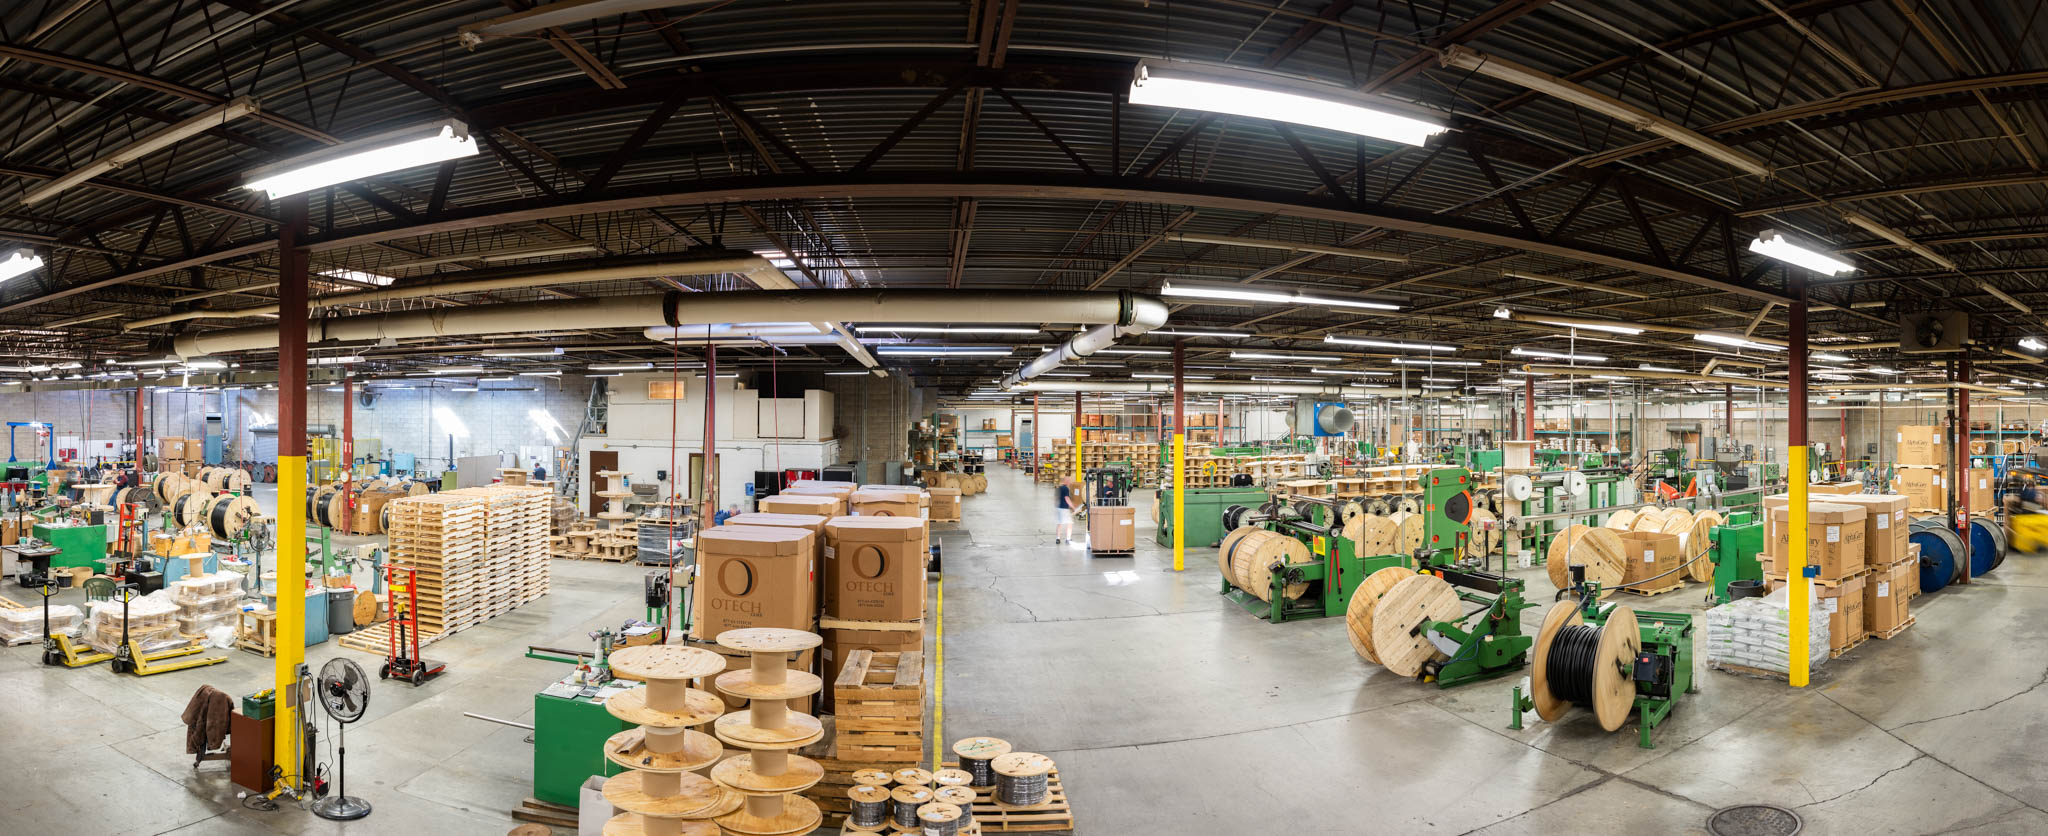 Panorama of production facility